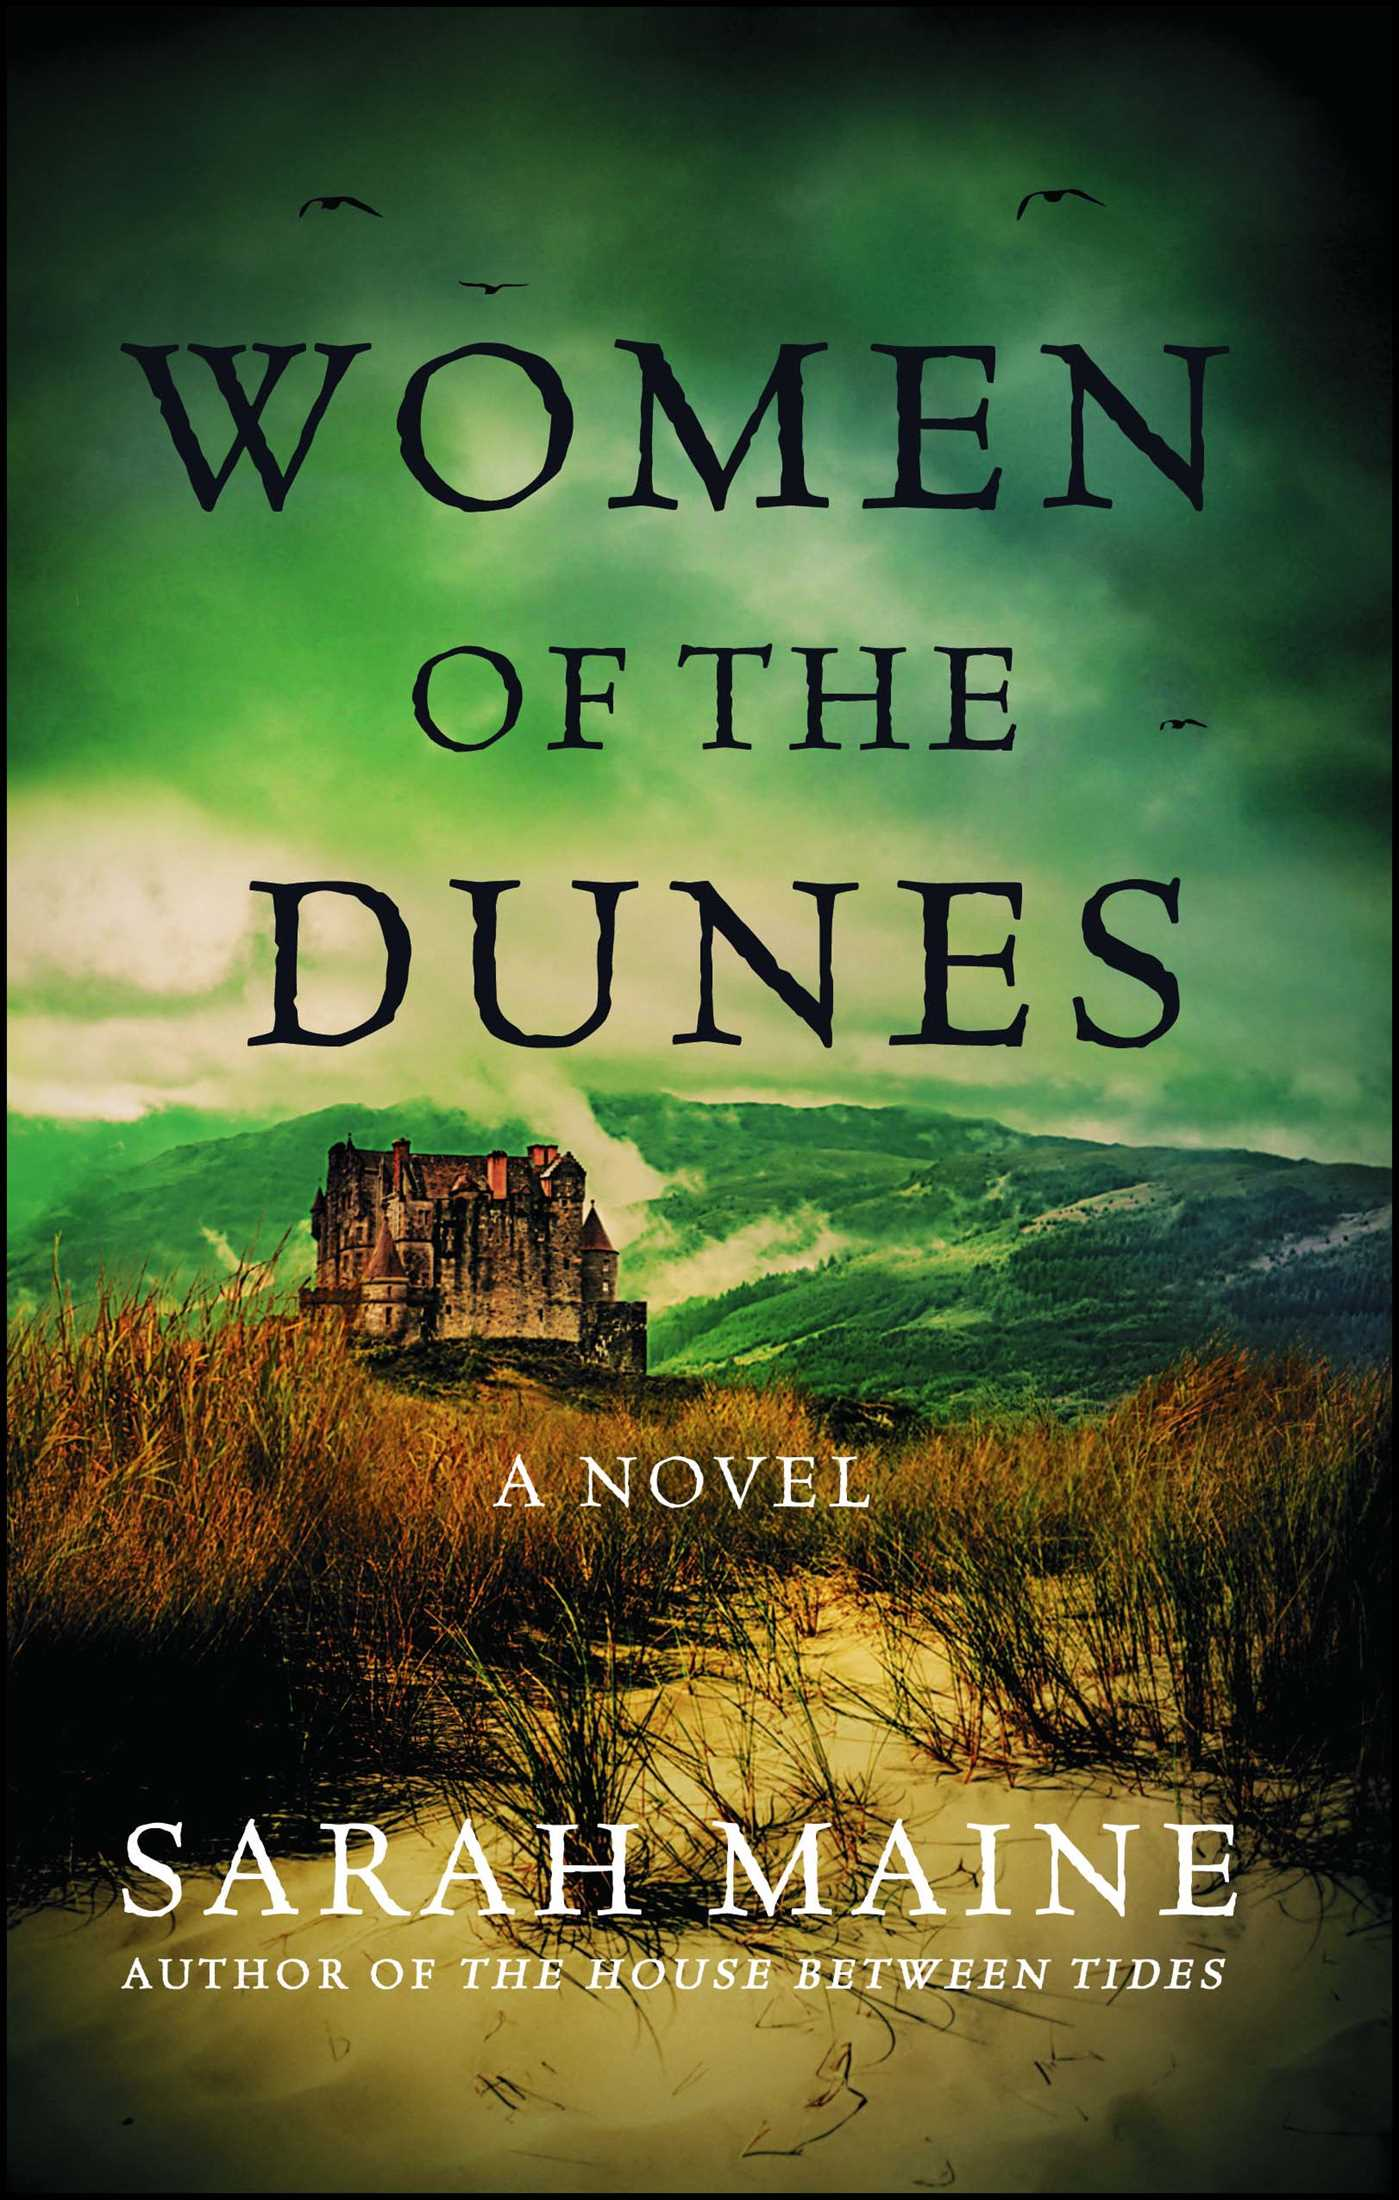 Women of the dunes 9781501189593 hr